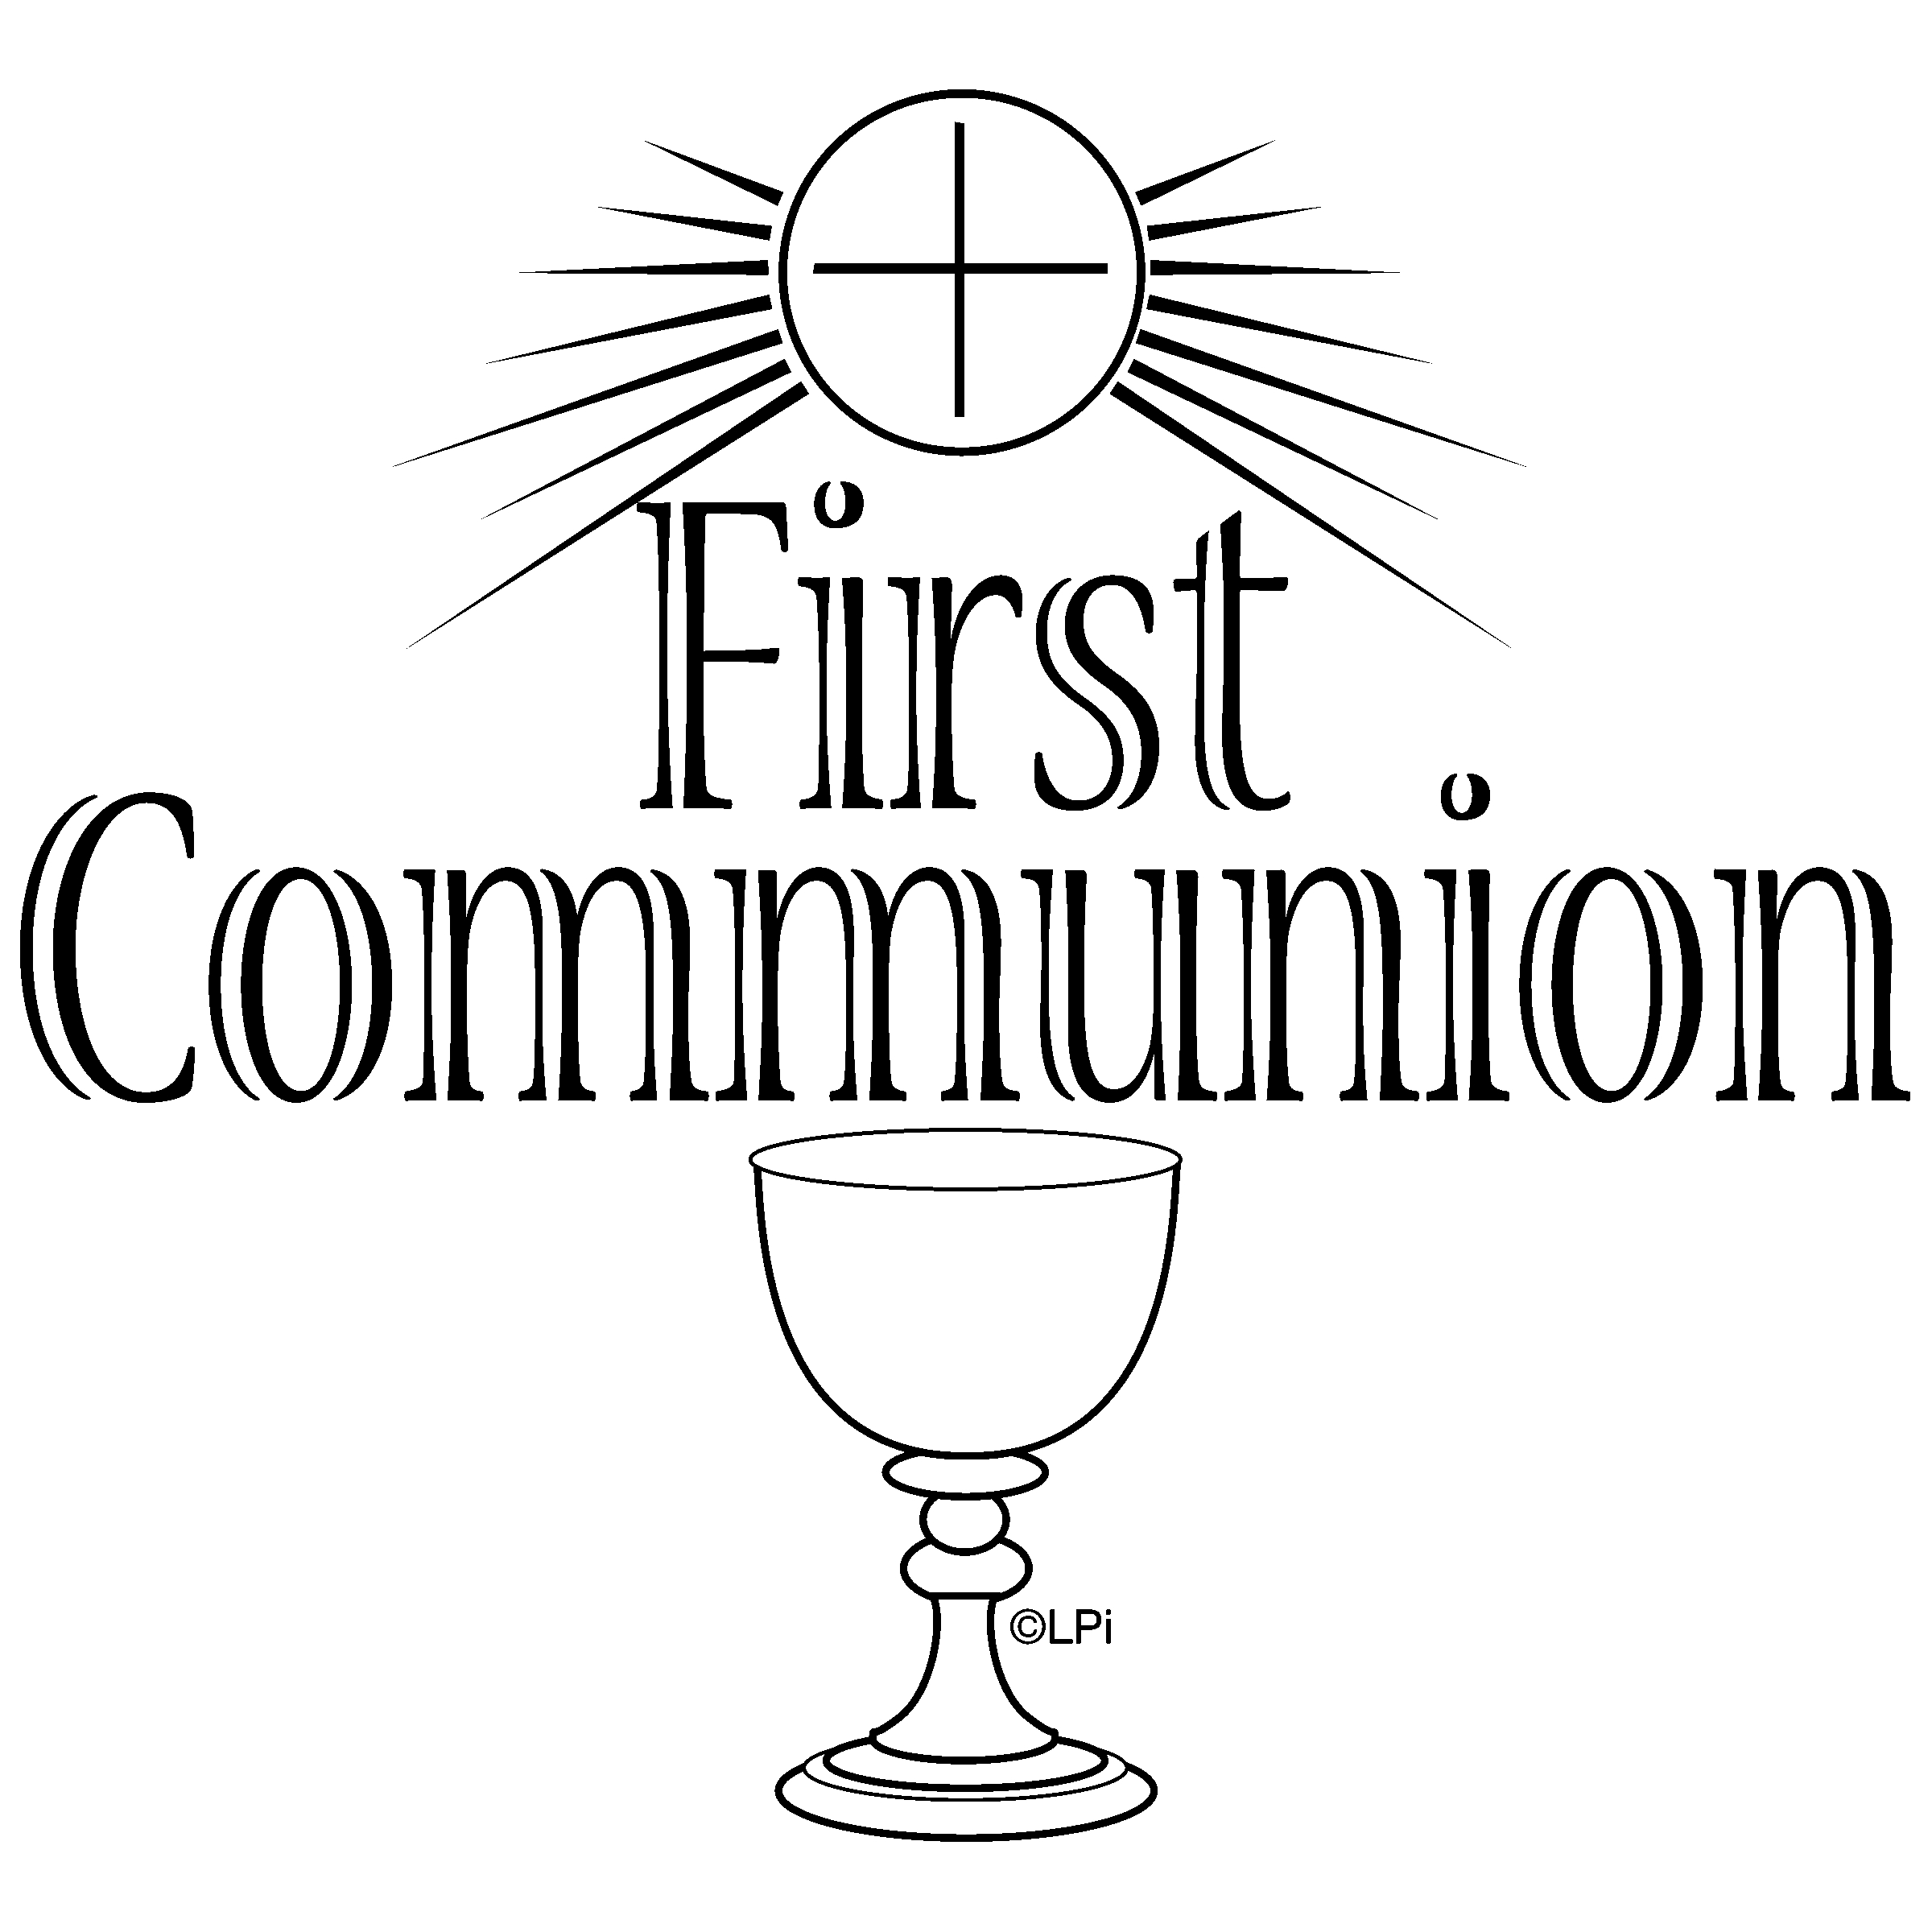 First communion firstmunion clip art clipart